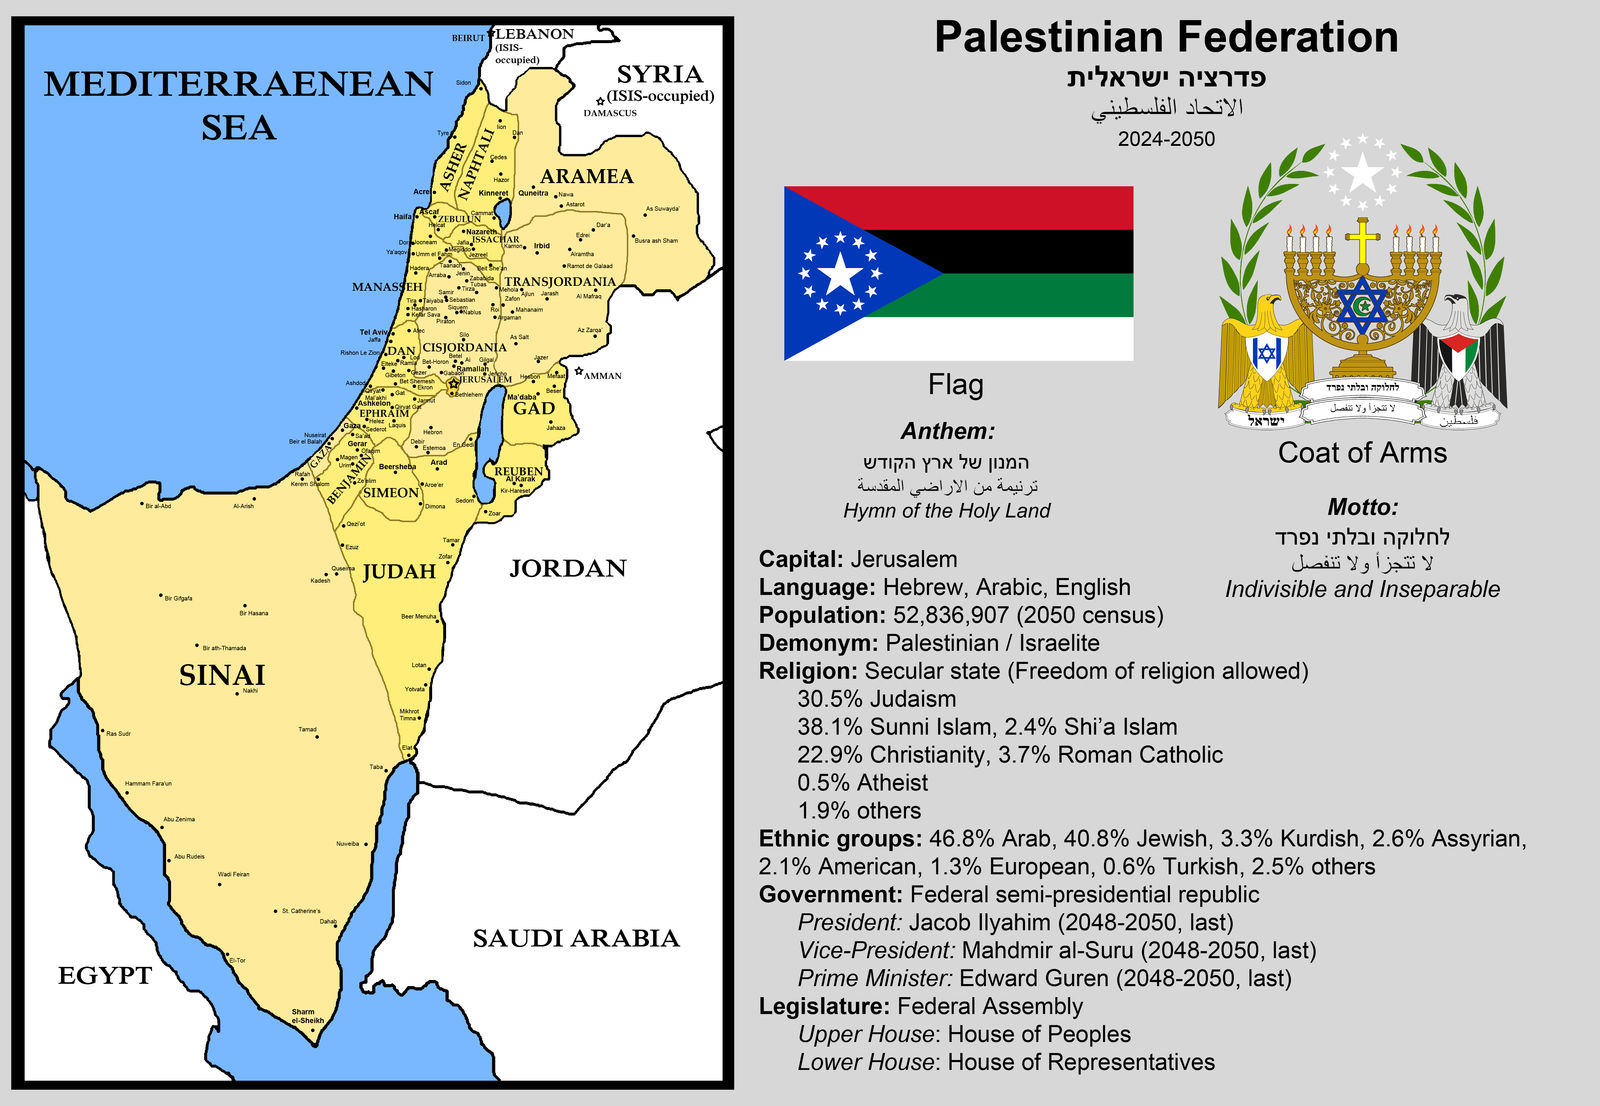 The Palestinian Federation (2024-2050)